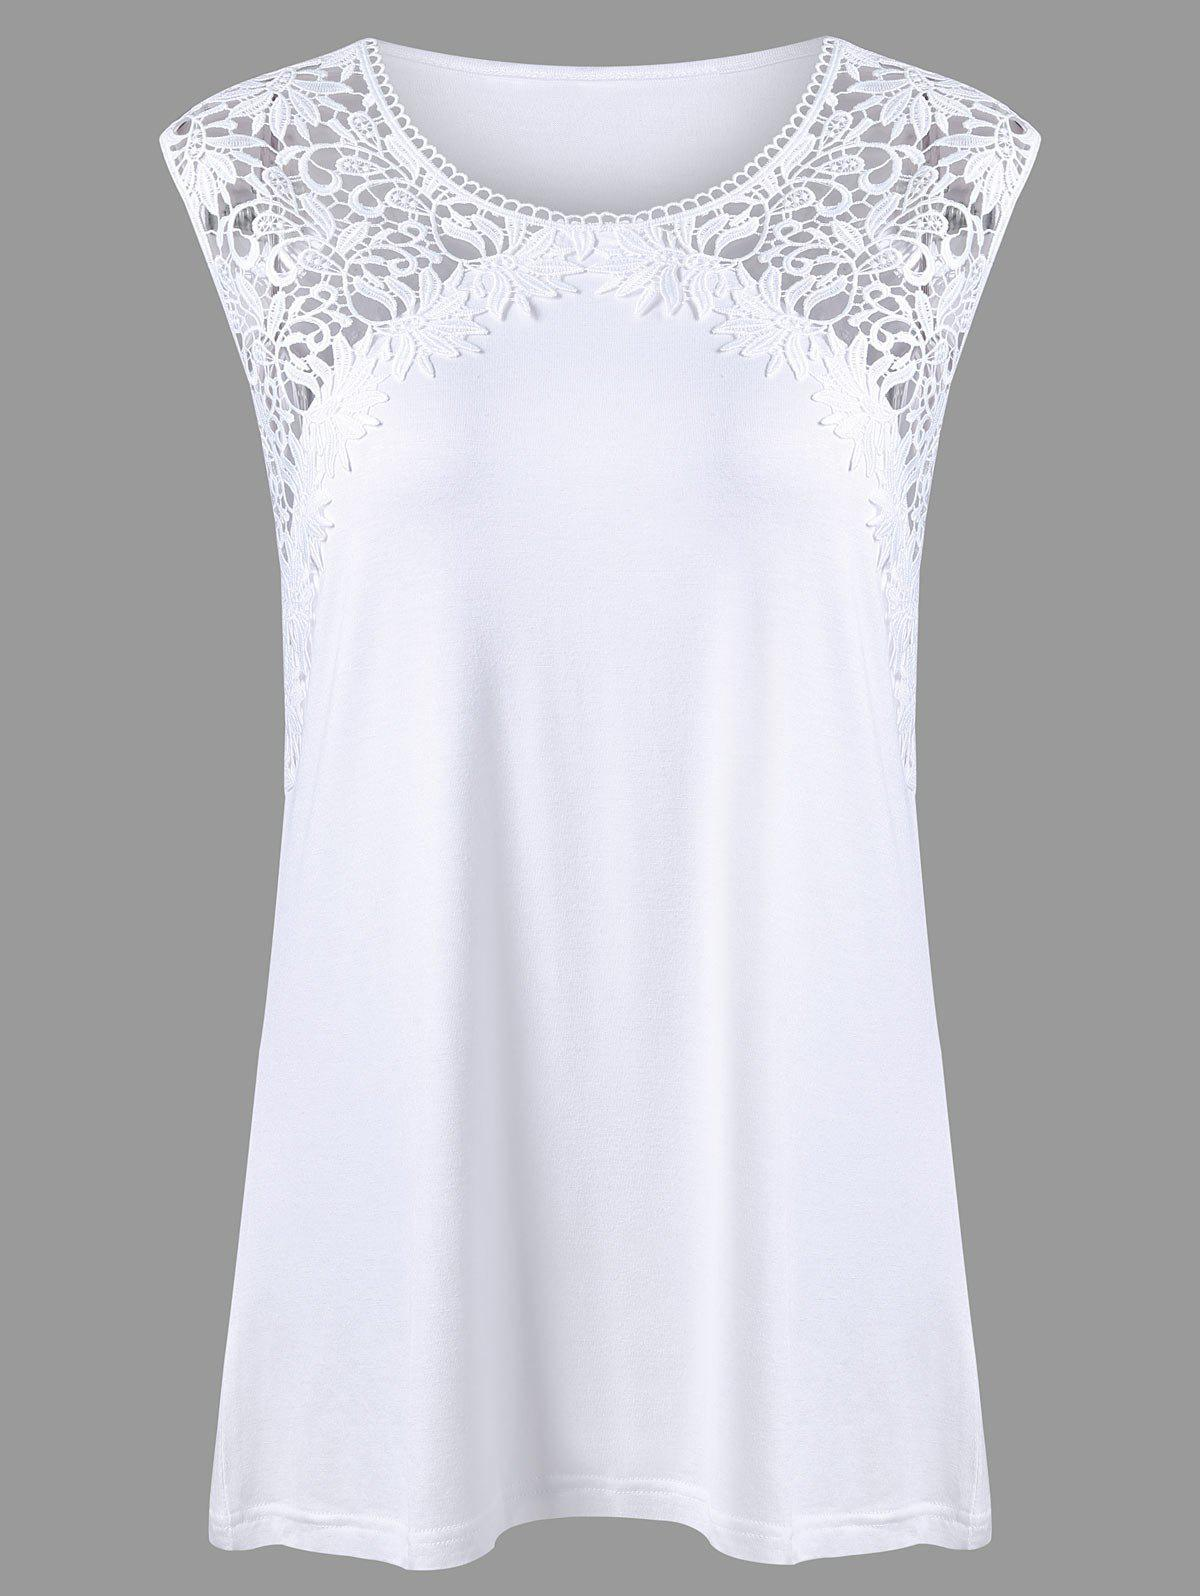 Plus Size Lace Panel Longline Tank TopWOMEN<br><br>Size: 4XL; Color: WHITE; Material: Rayon,Spandex; Shirt Length: Long; Sleeve Length: Sleeveless; Collar: Round Neck; Style: Casual; Season: Summer; Pattern Type: Floral; Weight: 0.3600kg; Package Contents: 1 x Tank Top;